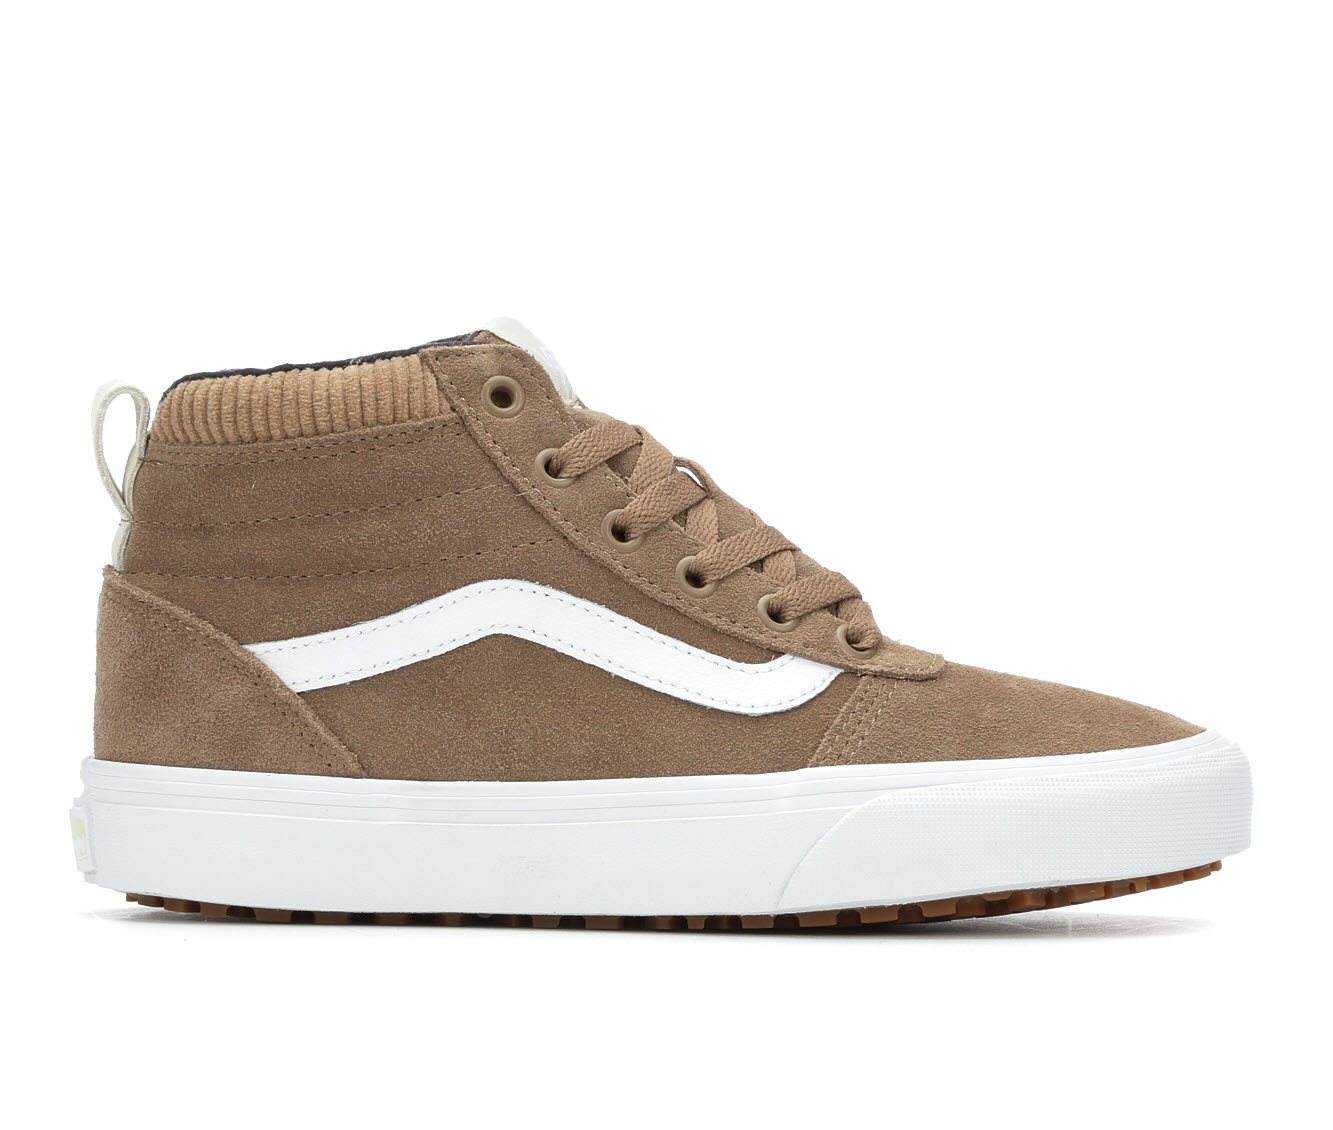 Vans Ward Hi MTE Women's Athletic Shoe (Brown)